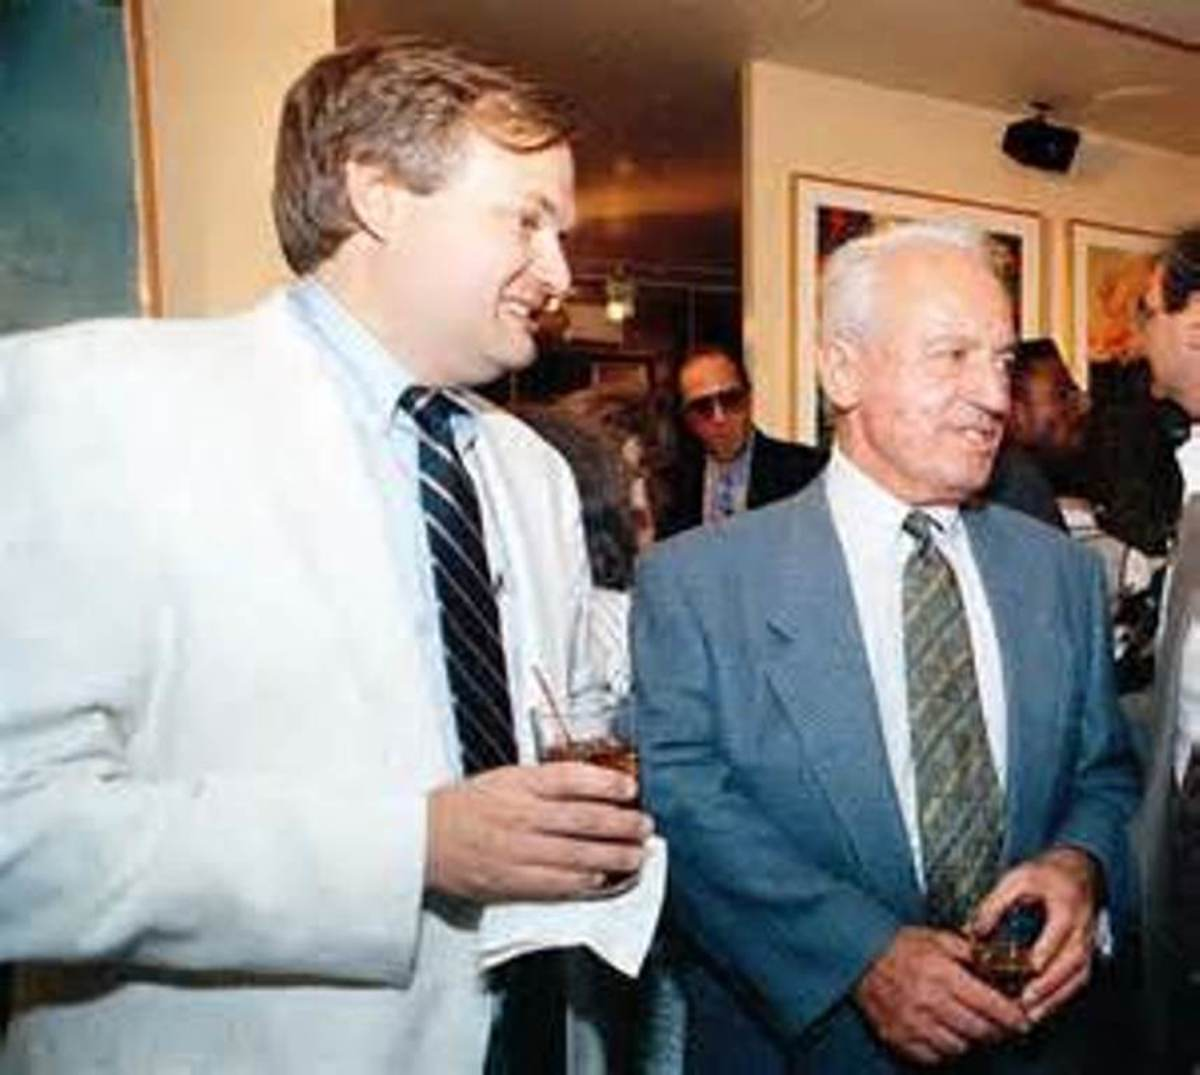 Donald Fehr and the late Marvin Miller. Fehr now works for the NHLPA.